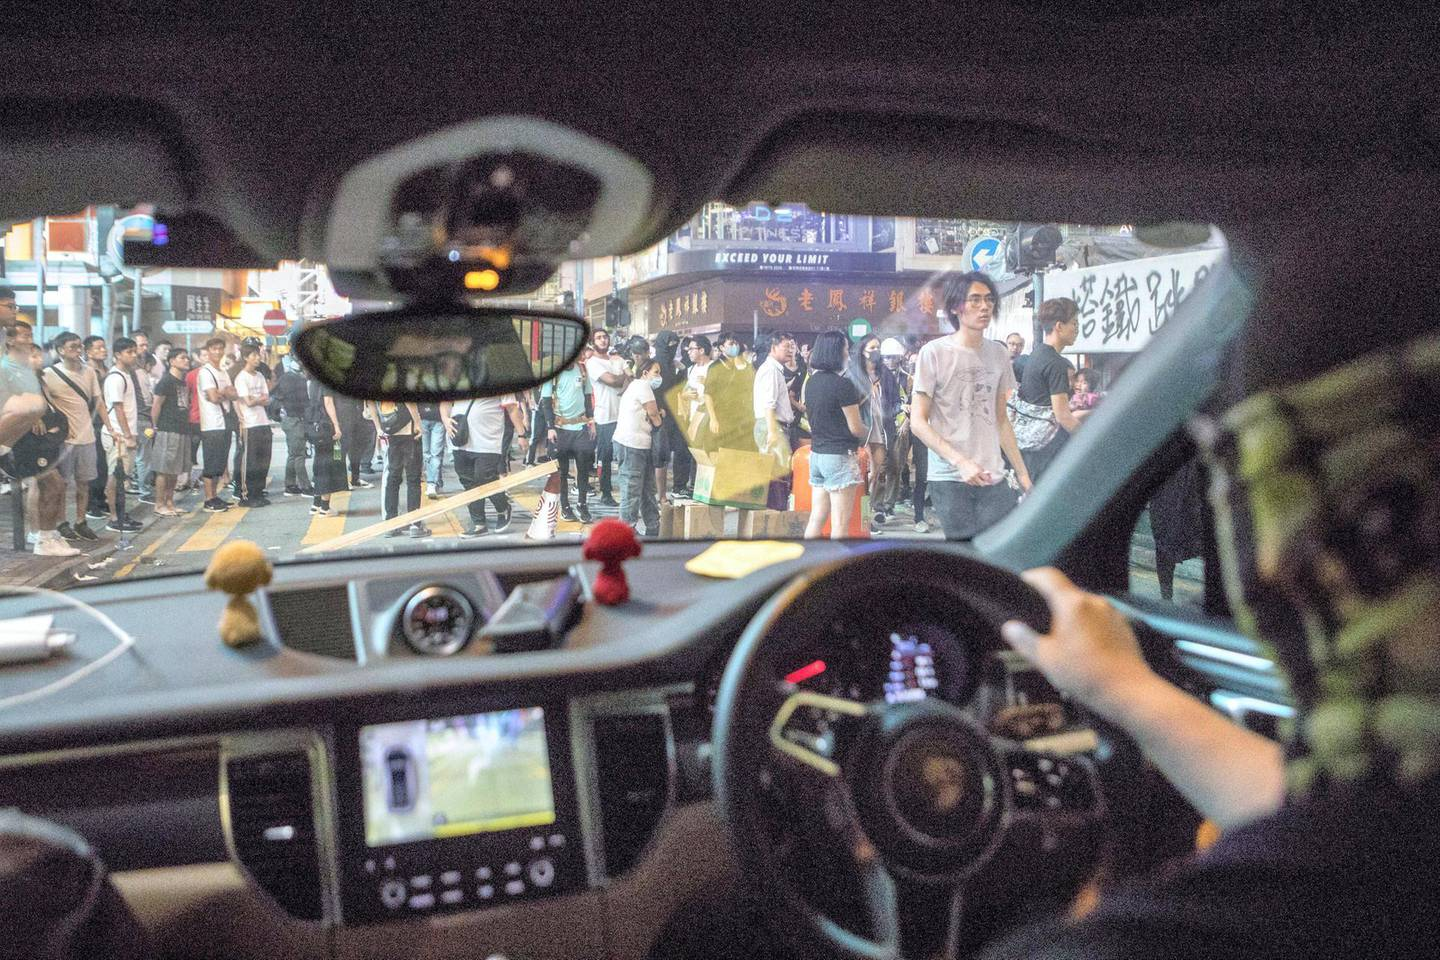 HONG KONG. SCHOOL BUS FEATURE: Chen makes his way through the crowds as he gives a volunteer medic a ride away from the protests safely to his home. 'School Buses', are the collective name to a group of volunteers, including Chen, who offer free transport for people who need help getting away from the protests safely.